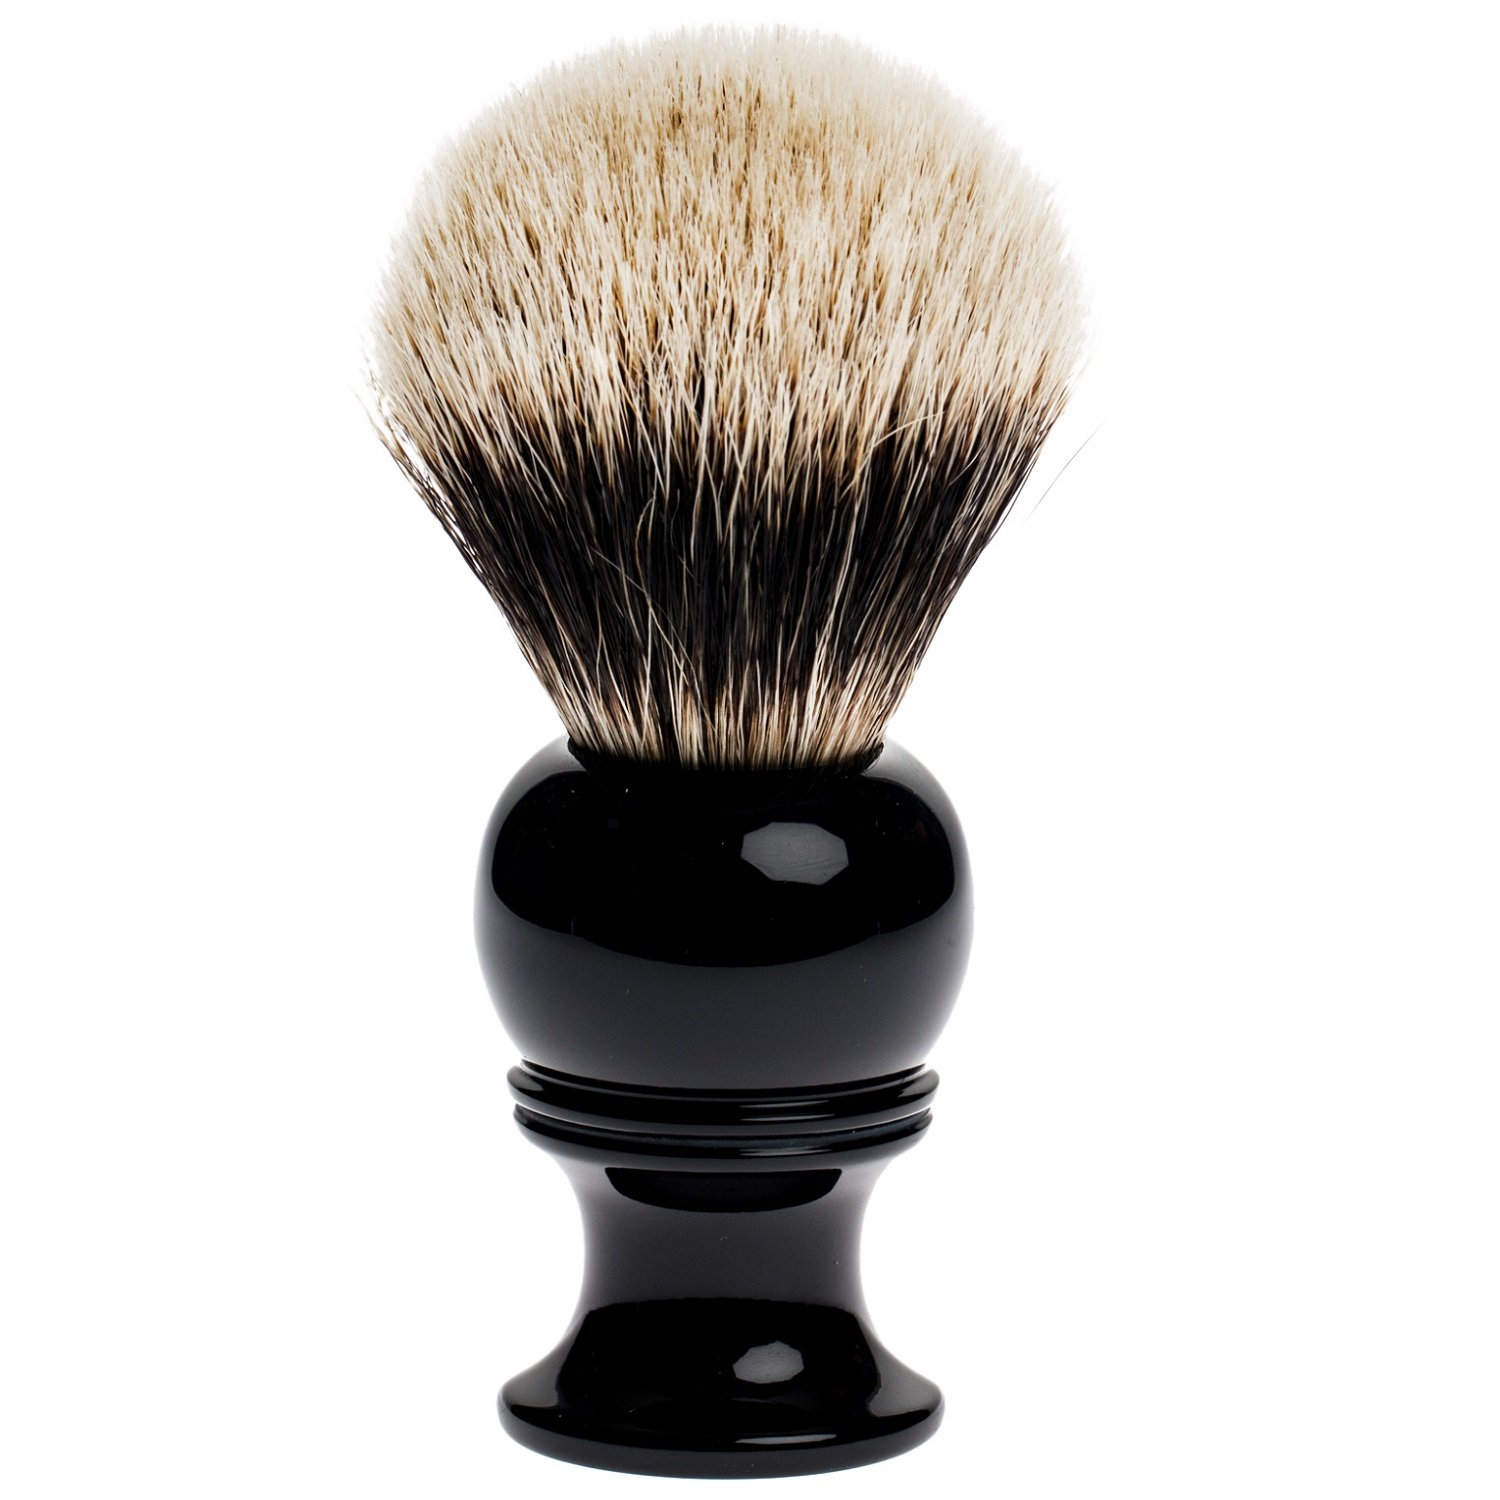 Fendrihan 2-Band Silvertip Badger Shaving Brush with Black Resin Handle for Personal and Professional Shaving